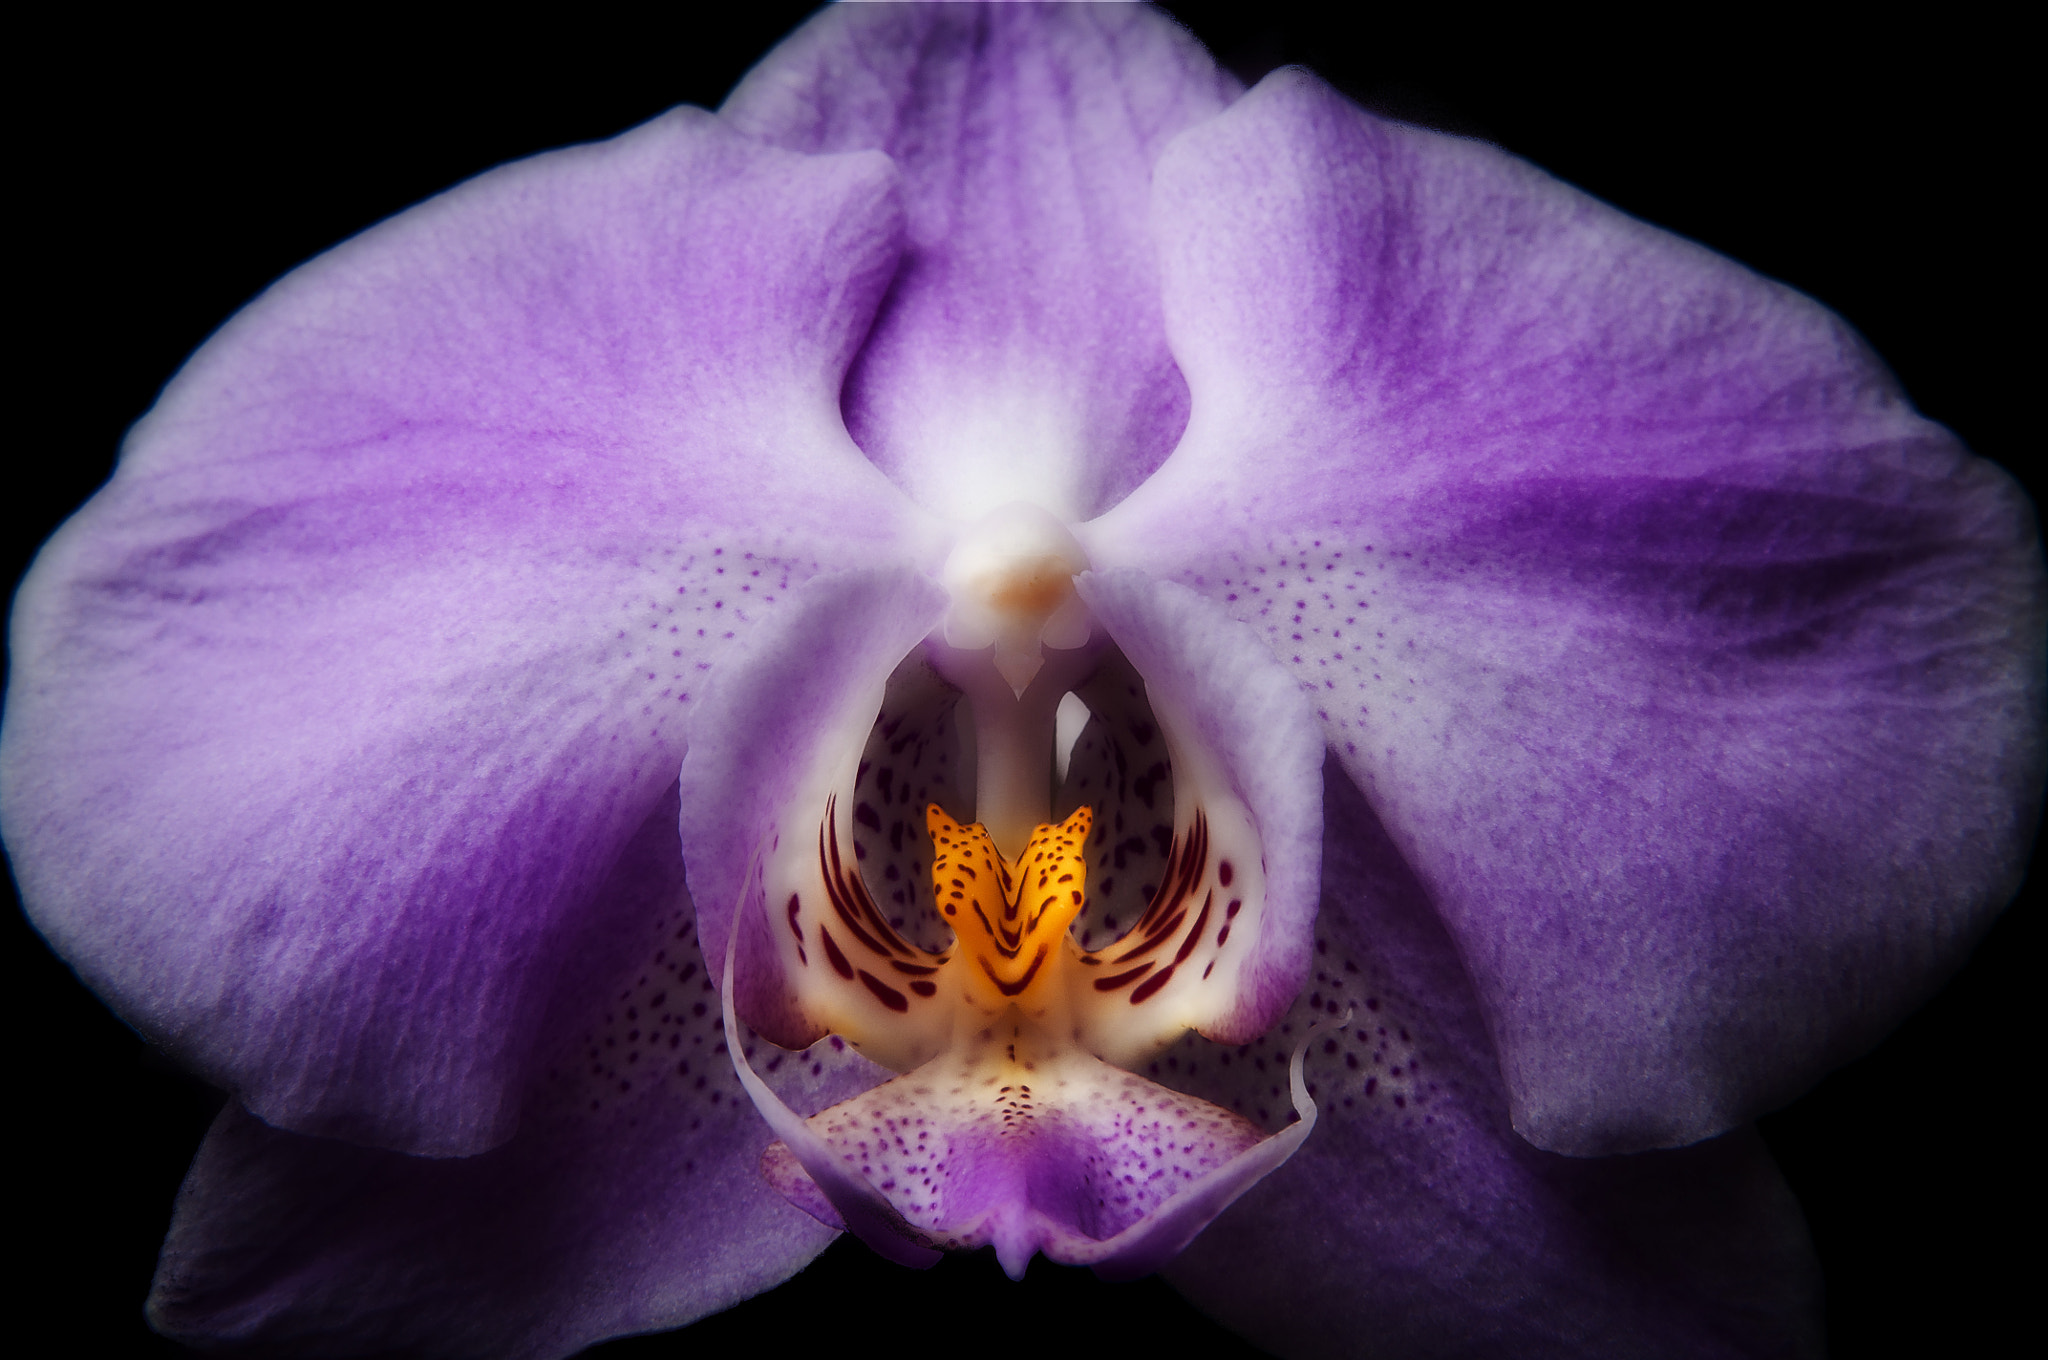 Photograph Orchid1 by Jan Westman on 500px